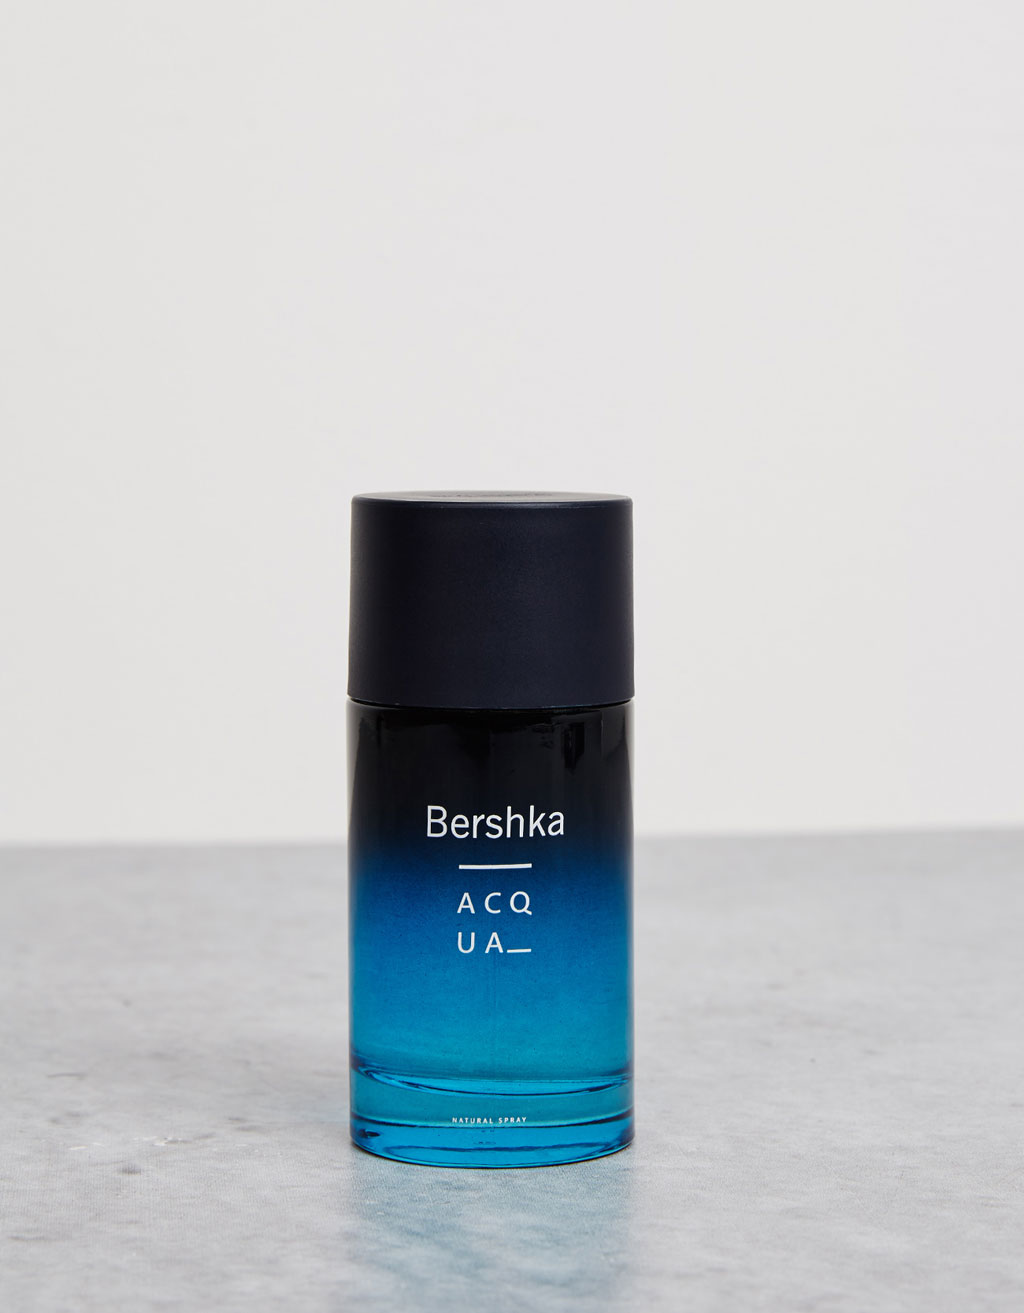 Bershka Acqua' Eau de Toilette 100ml